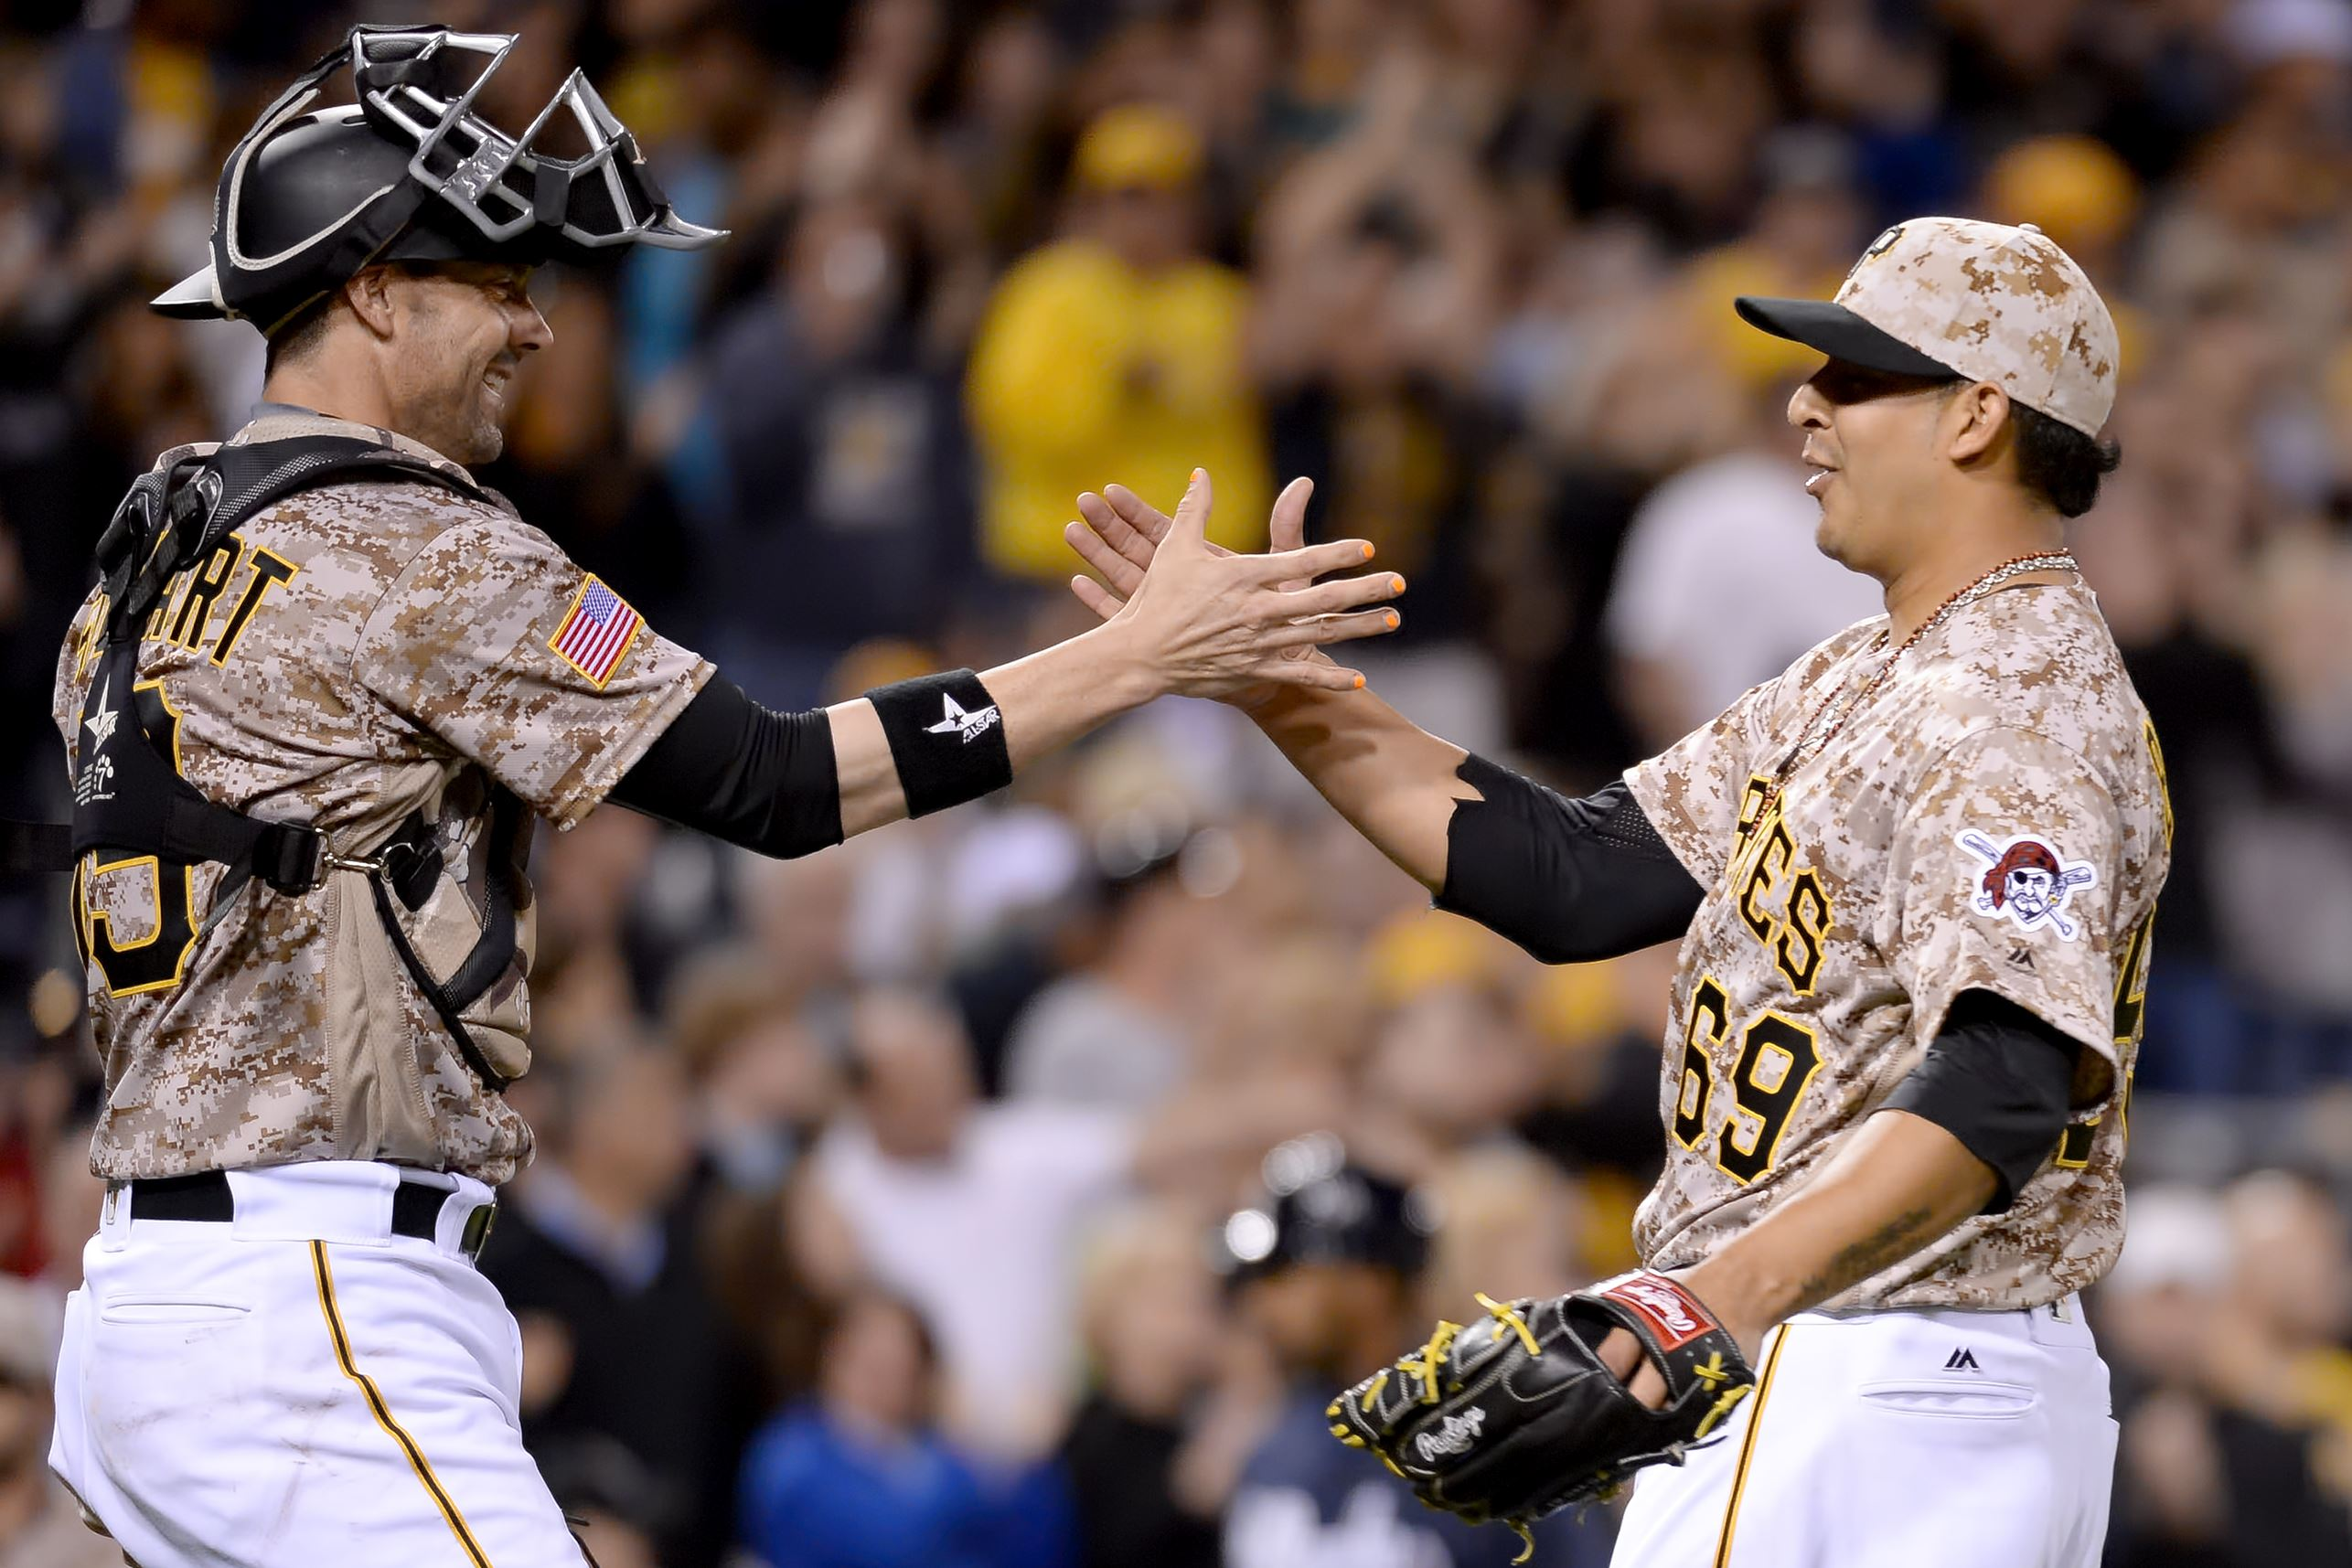 Pirates release Boscan, option Moroff to activate Vogelsong